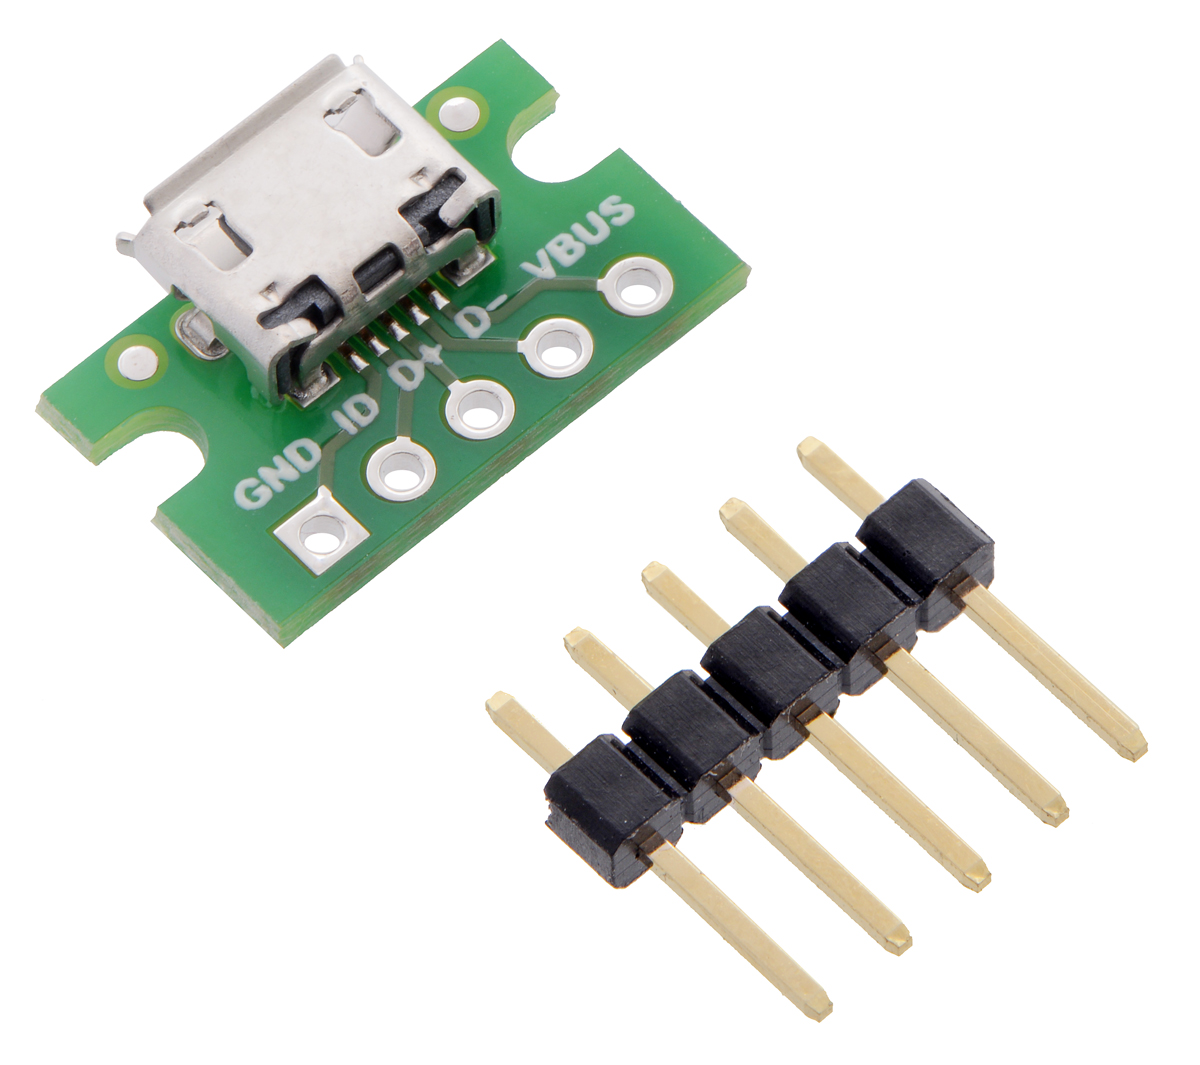 Pololu - USB Micro-B Connector Breakout Board